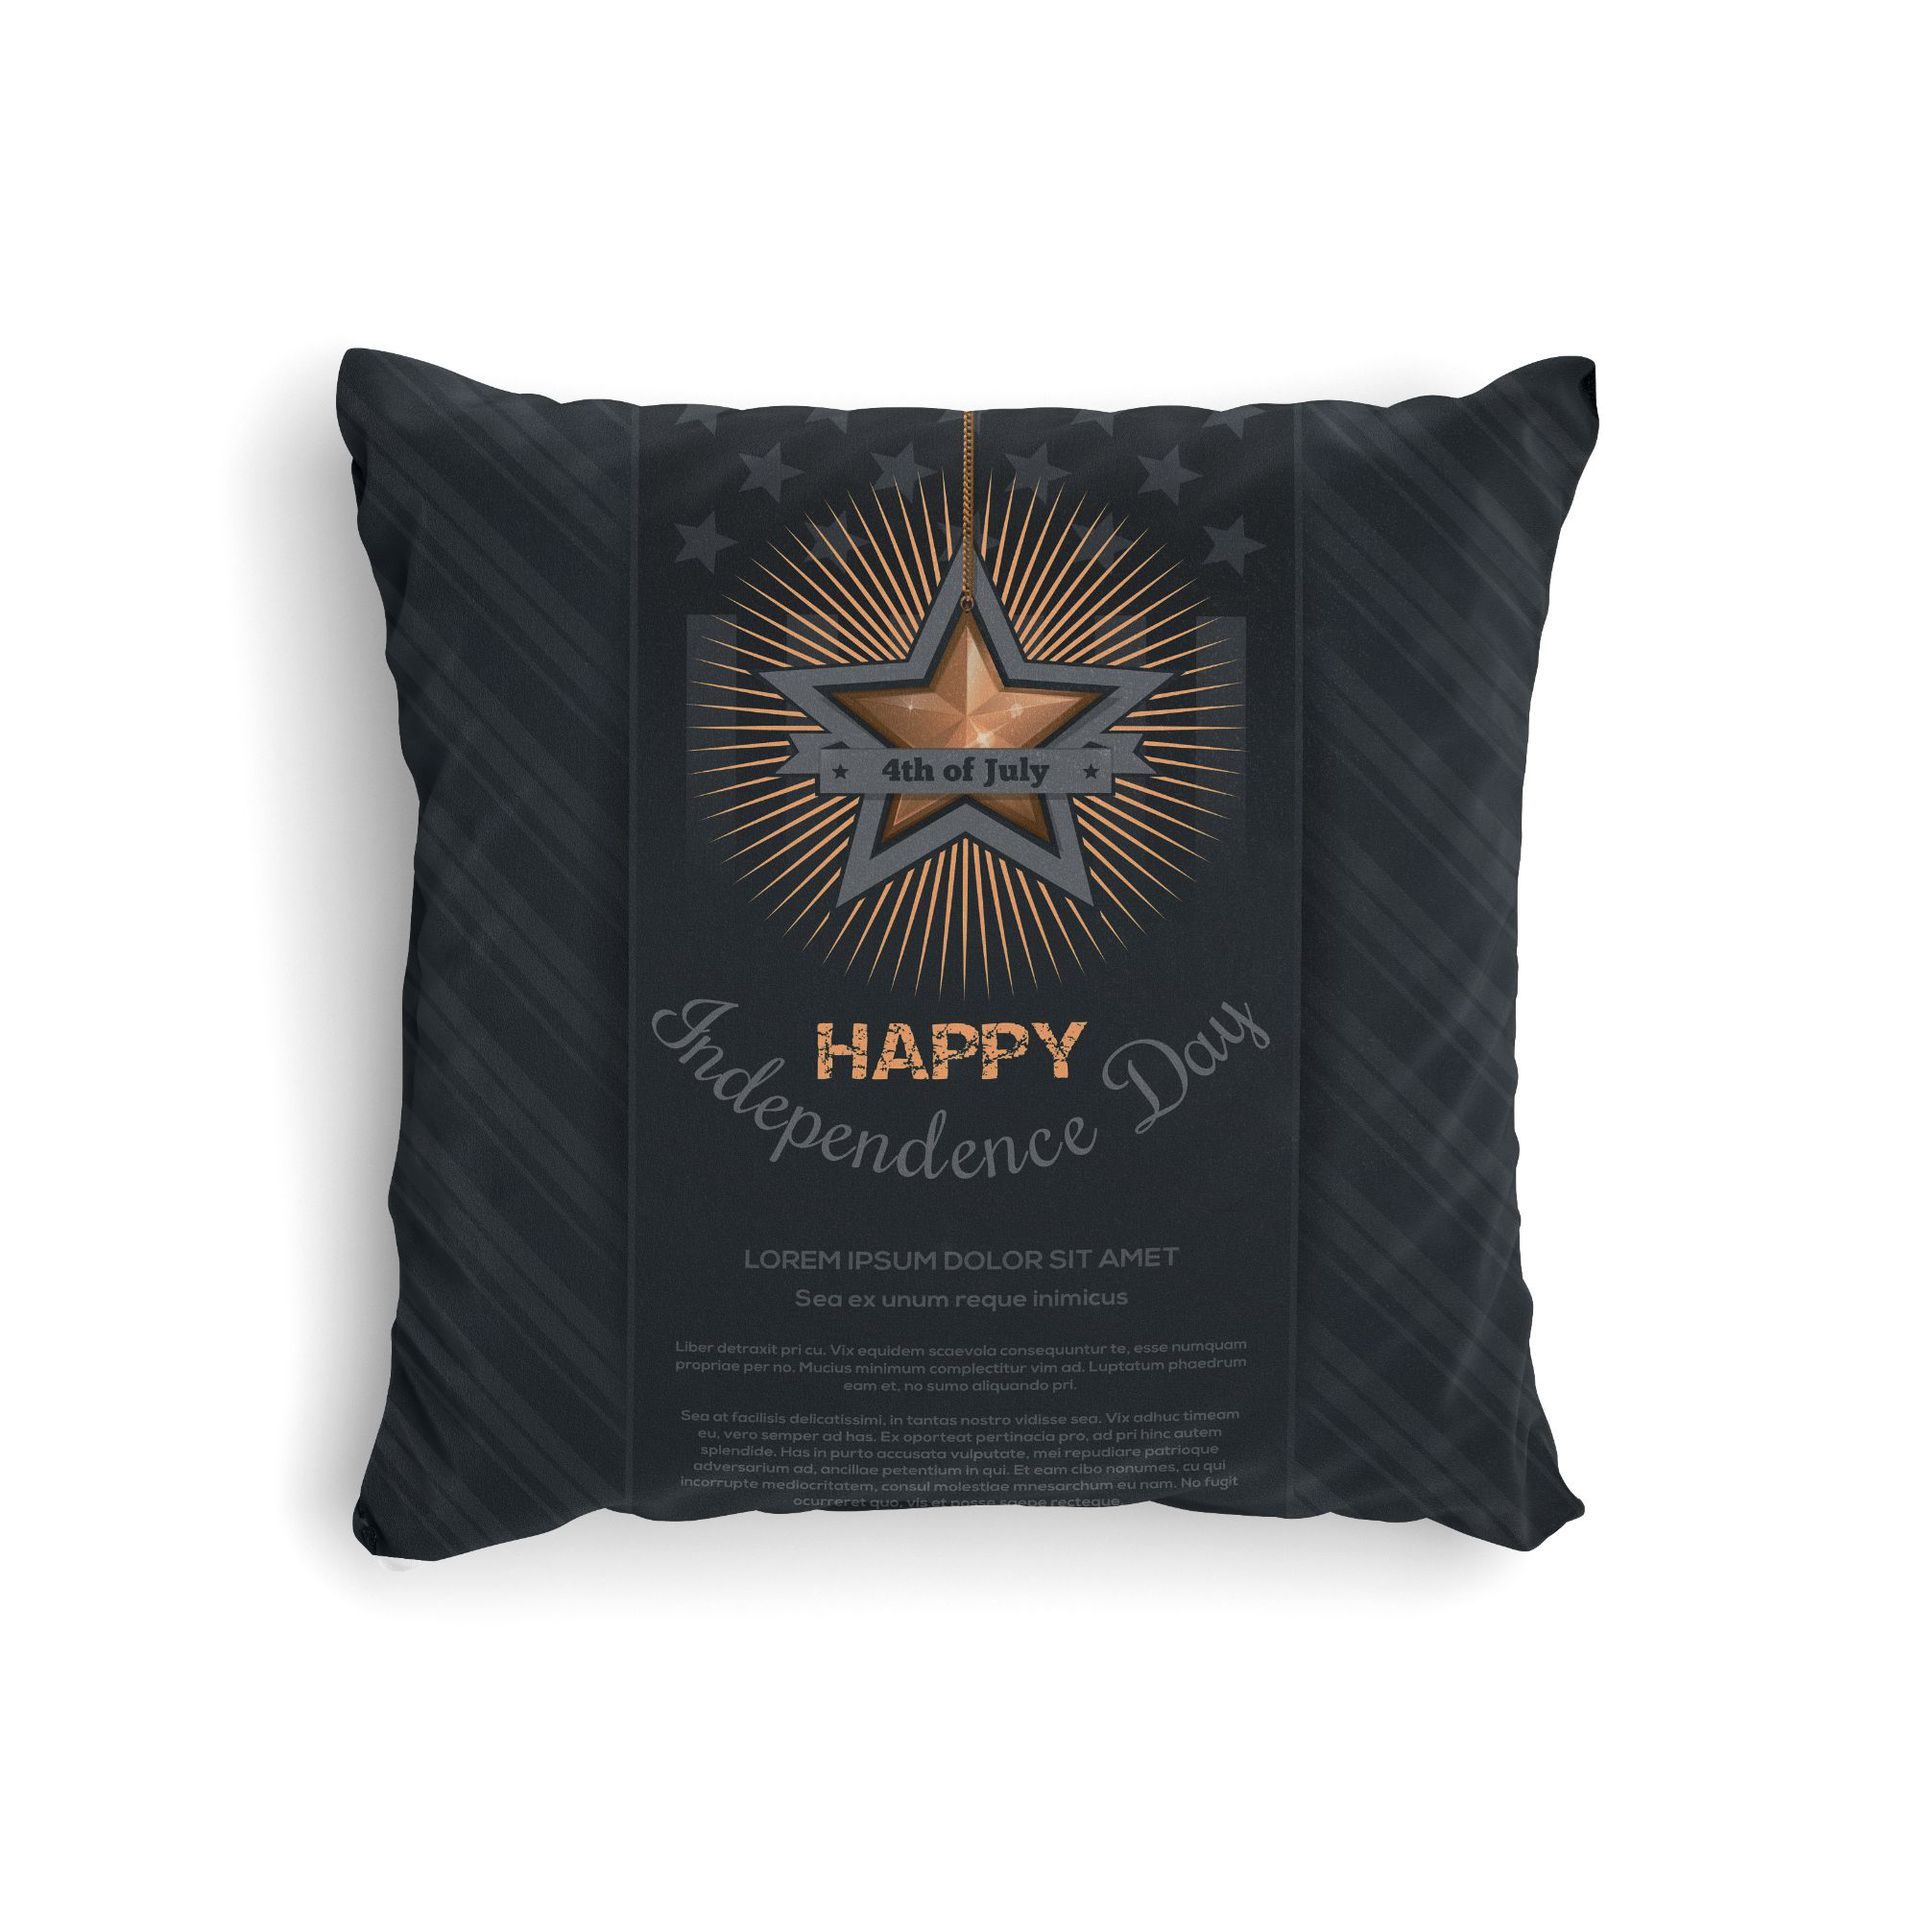 Stylish Sleek Independence Day Pillowcase for House Events